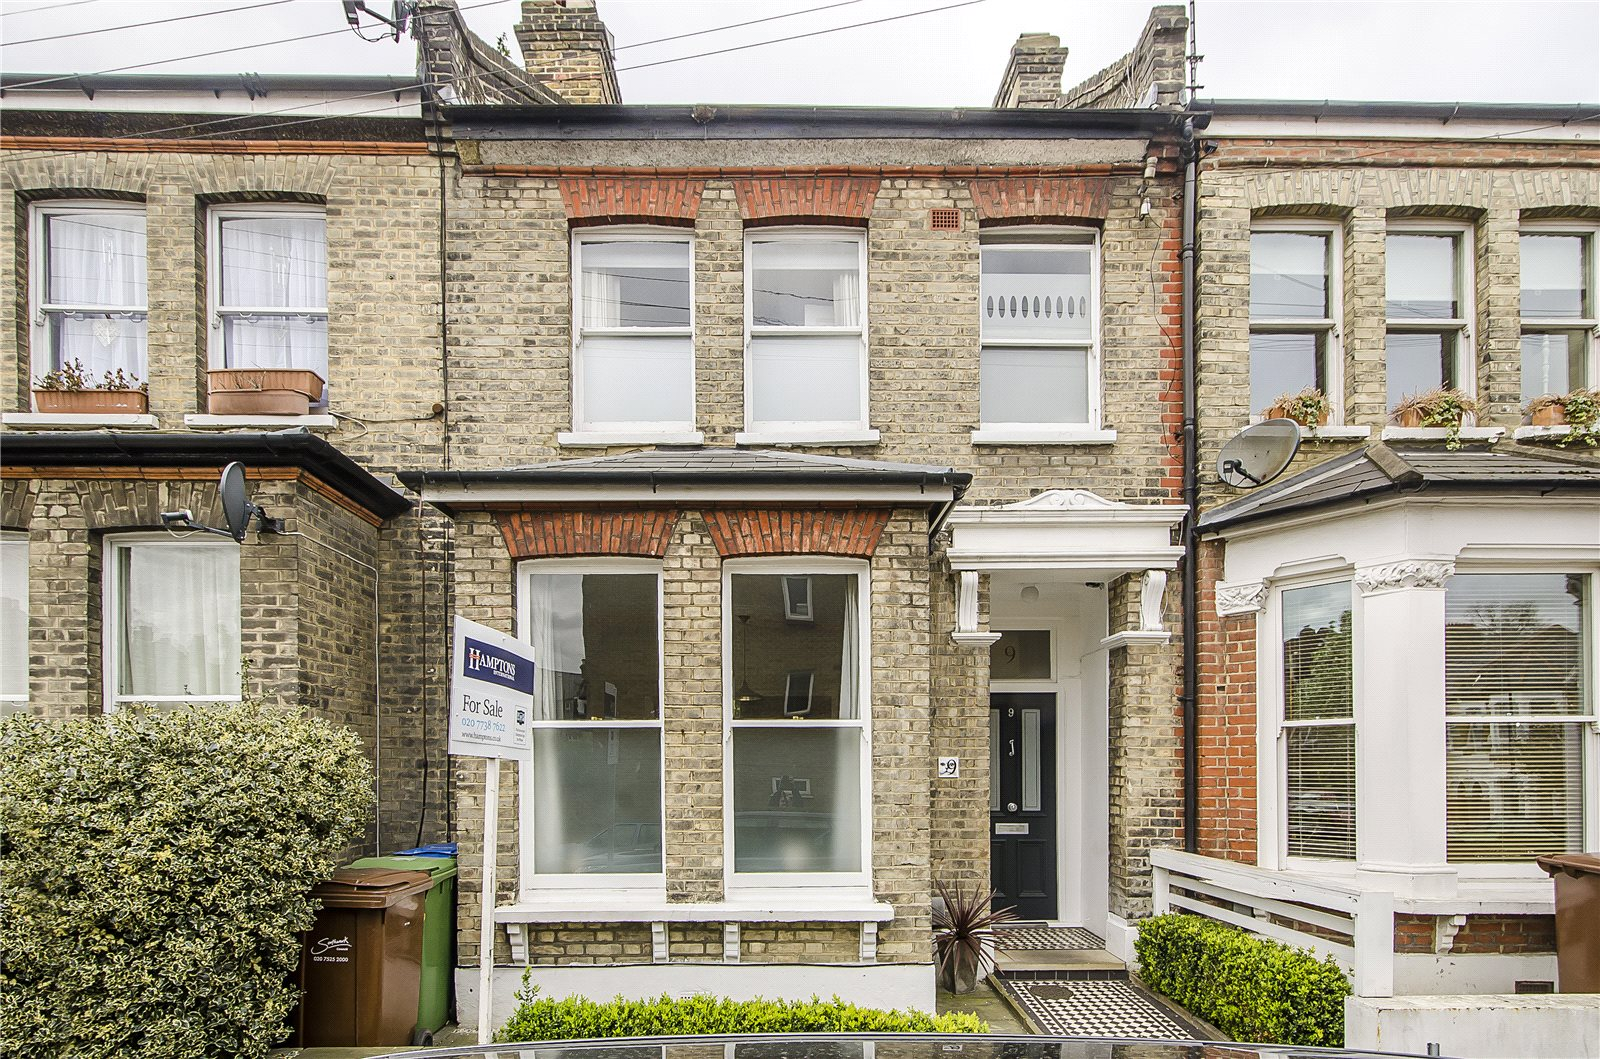 3 bedroom house to buy in london 3 bedroom house to buy in for 669 collingwood terrace glenmoore pa